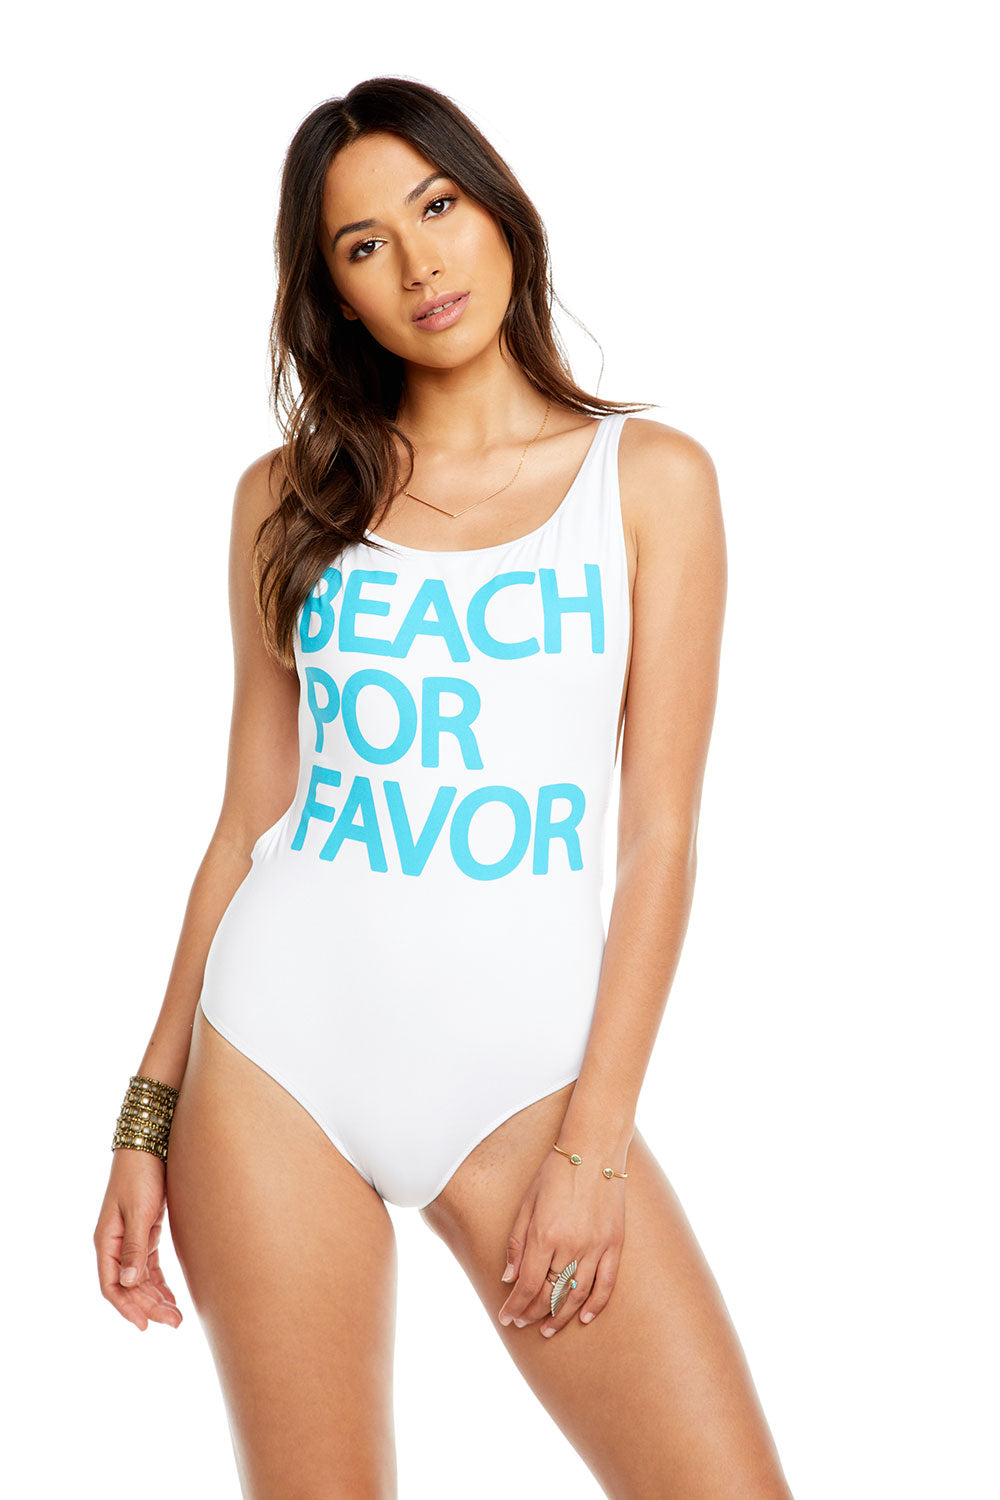 Beach Please WOMENS chaserbrand4.myshopify.com